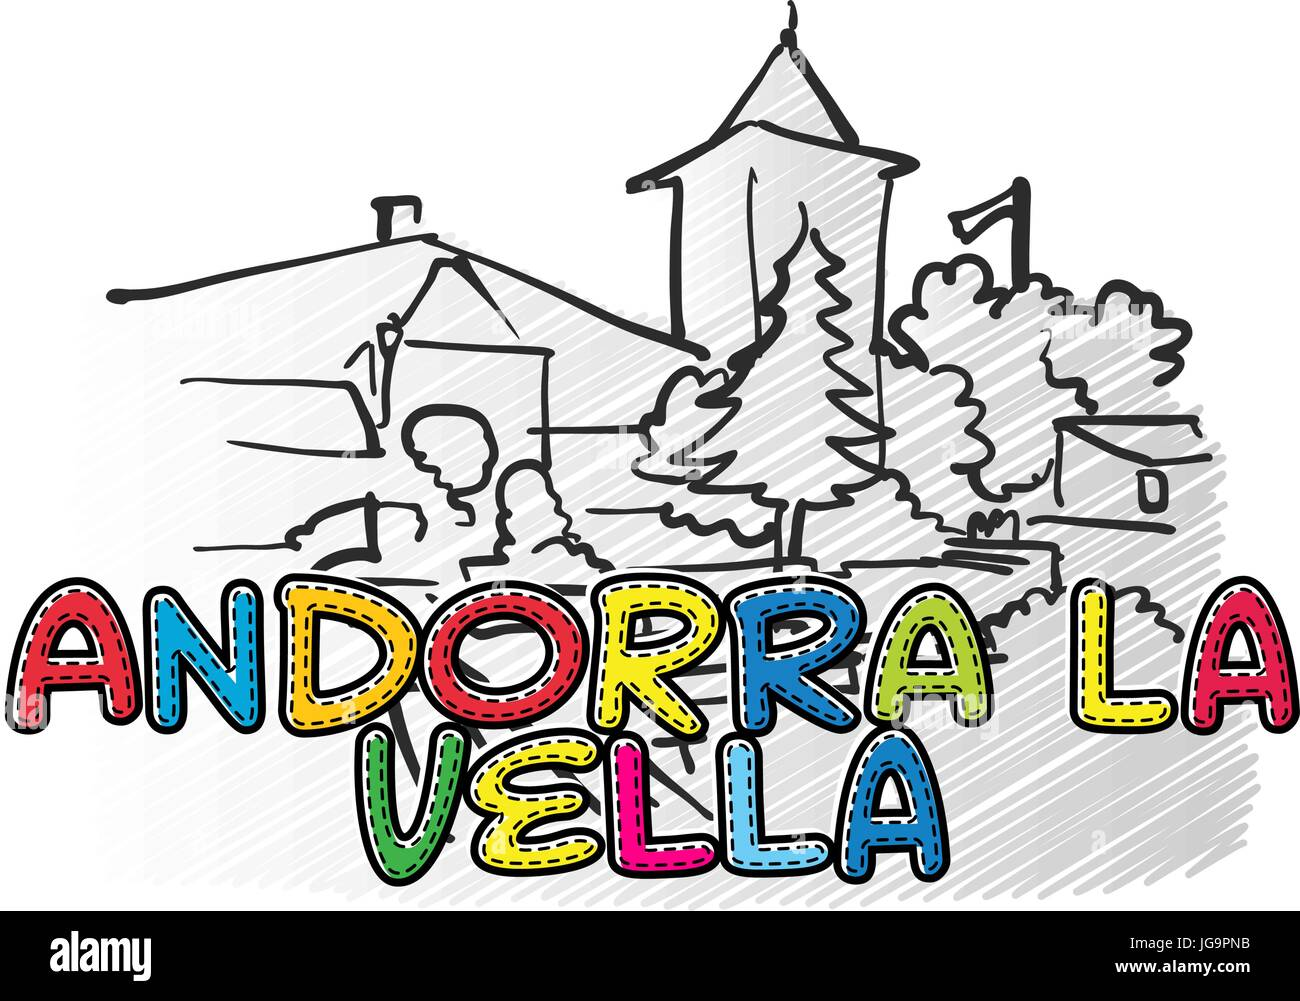 Andorra la vella beautiful sketched icon, famaous hand-drawn landmark, city name lettering, vector illustration Stock Vector